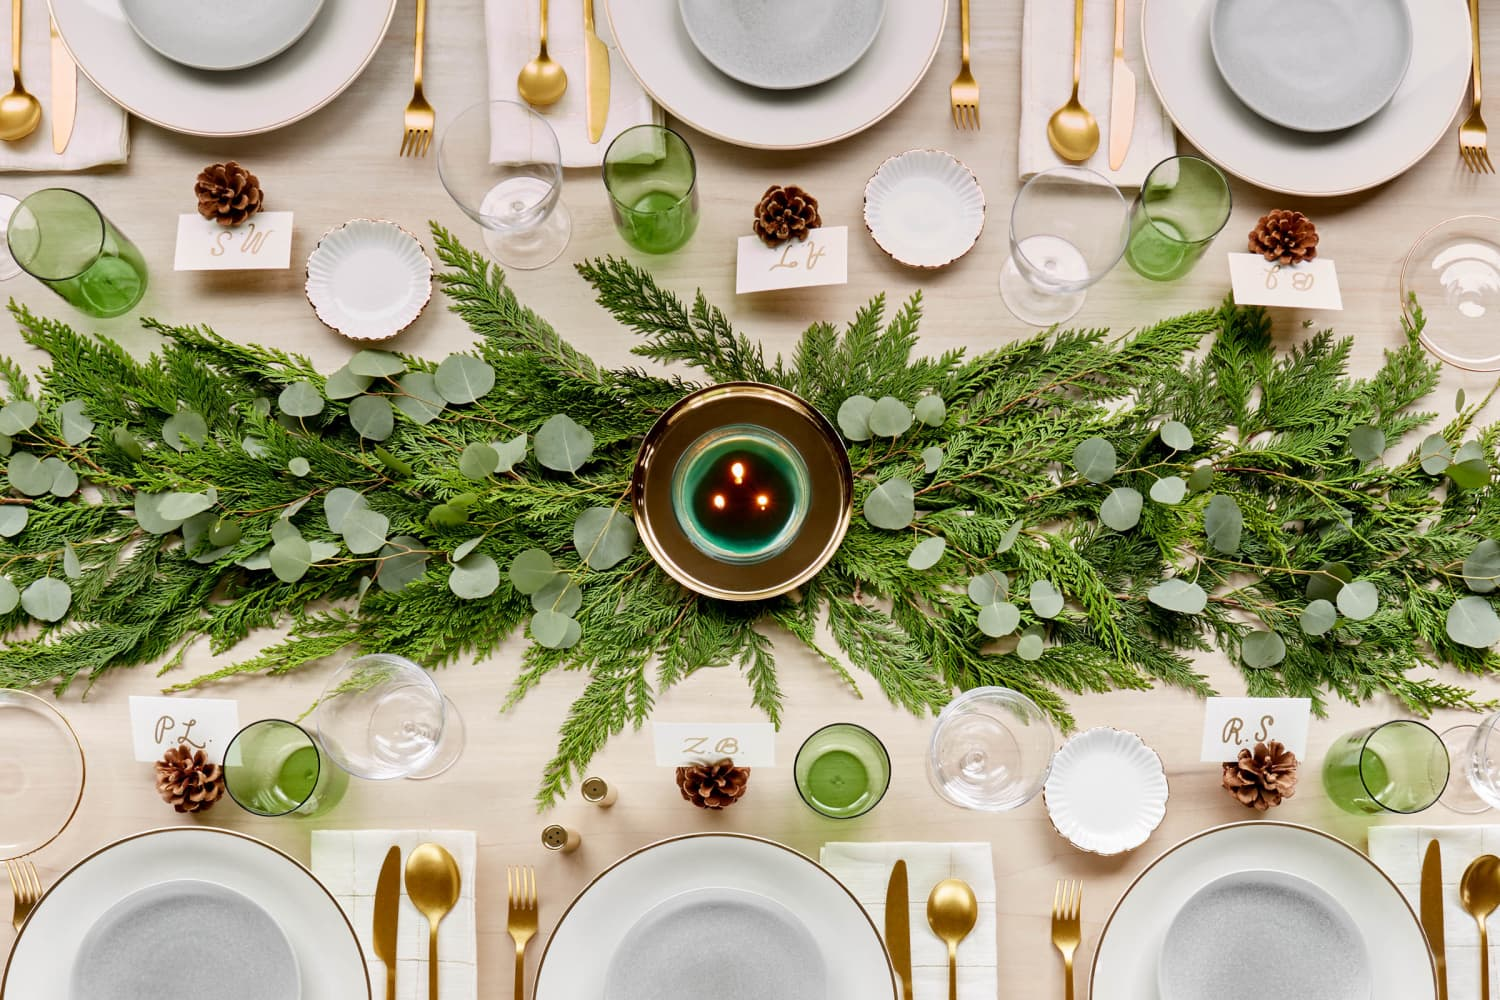 Set the Table with This Easy Evergreen Tablescape